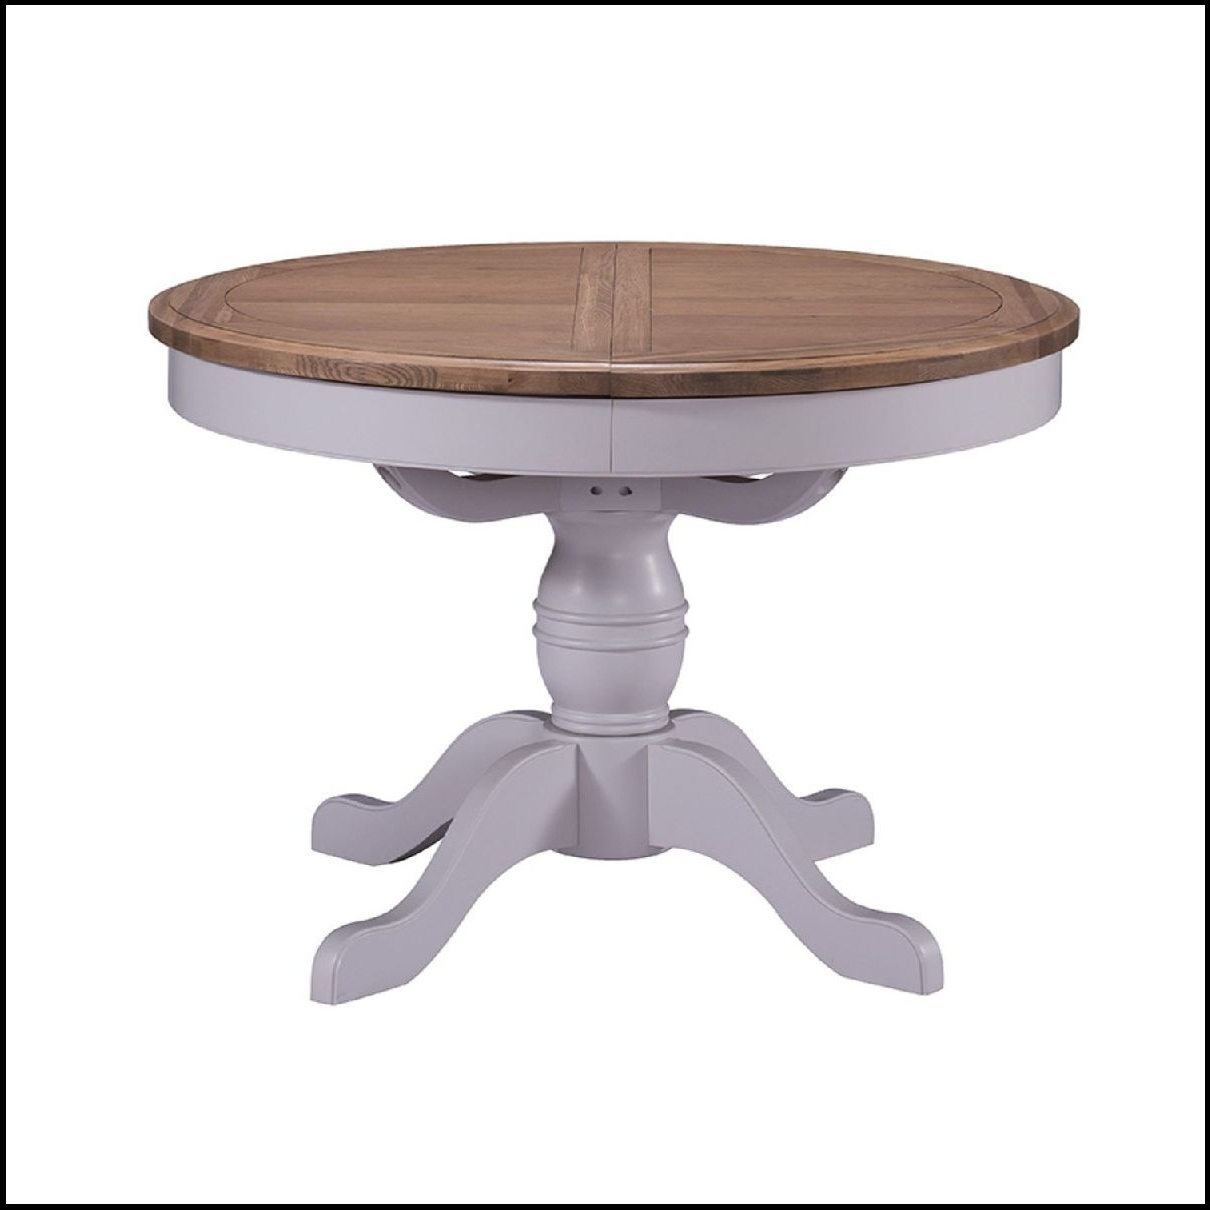 Glass Round Extending Dining Tables Intended For Preferred Beautifull Royal Oak Round Glass Dining Table With Round Extendable (View 16 of 25)